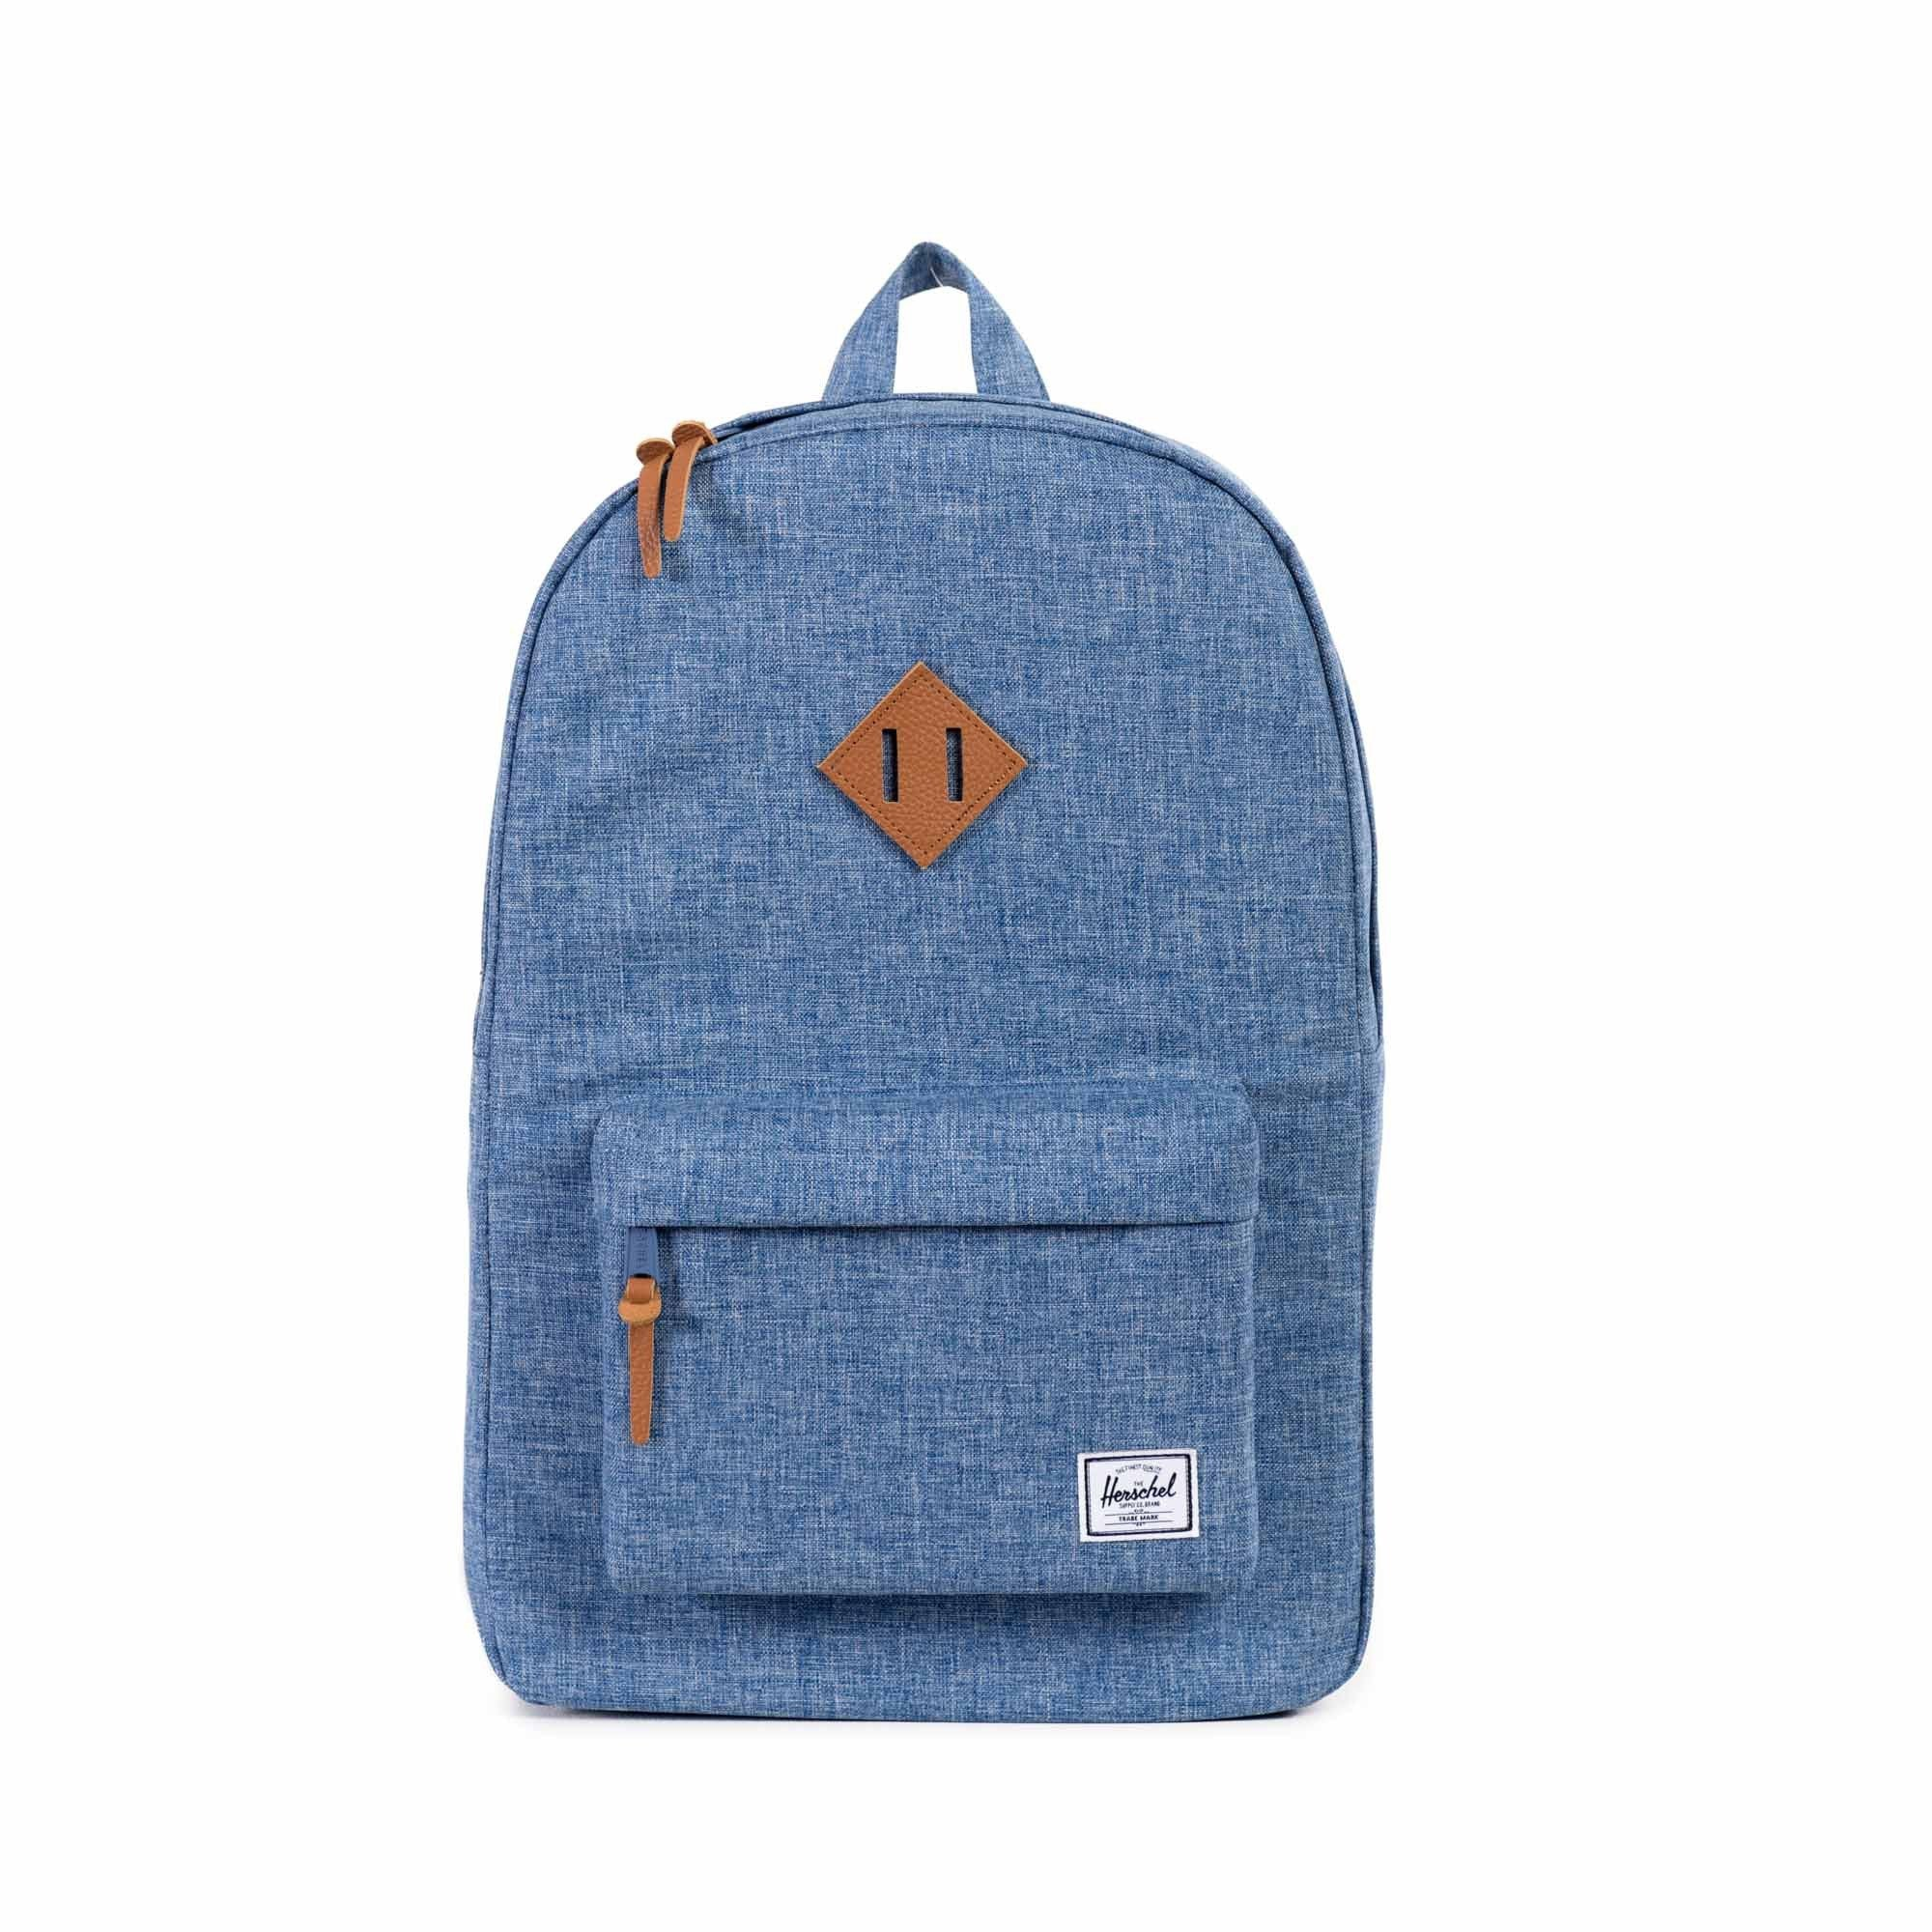 Herschel Heritage Backpack Limoges Crosshatch